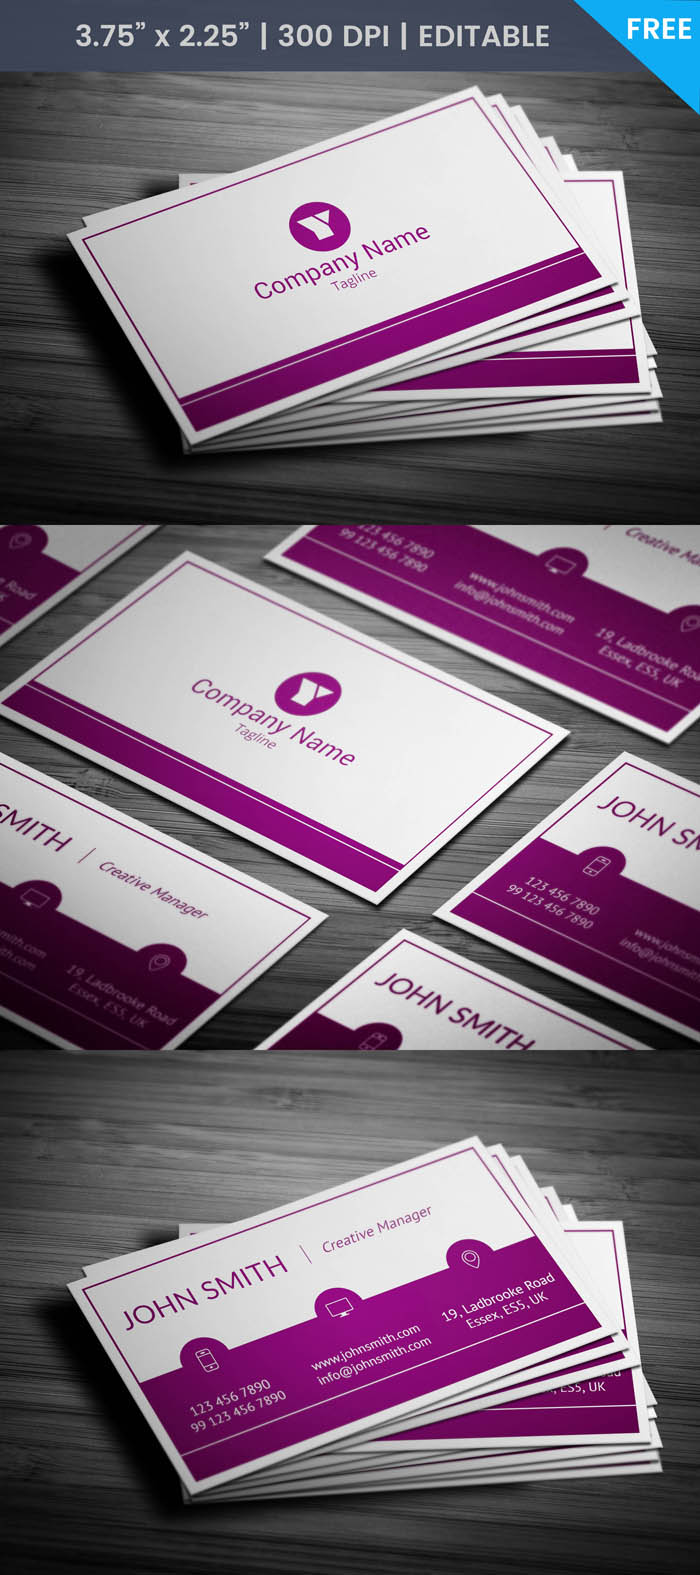 Woman Manager Business Card - Full Preview